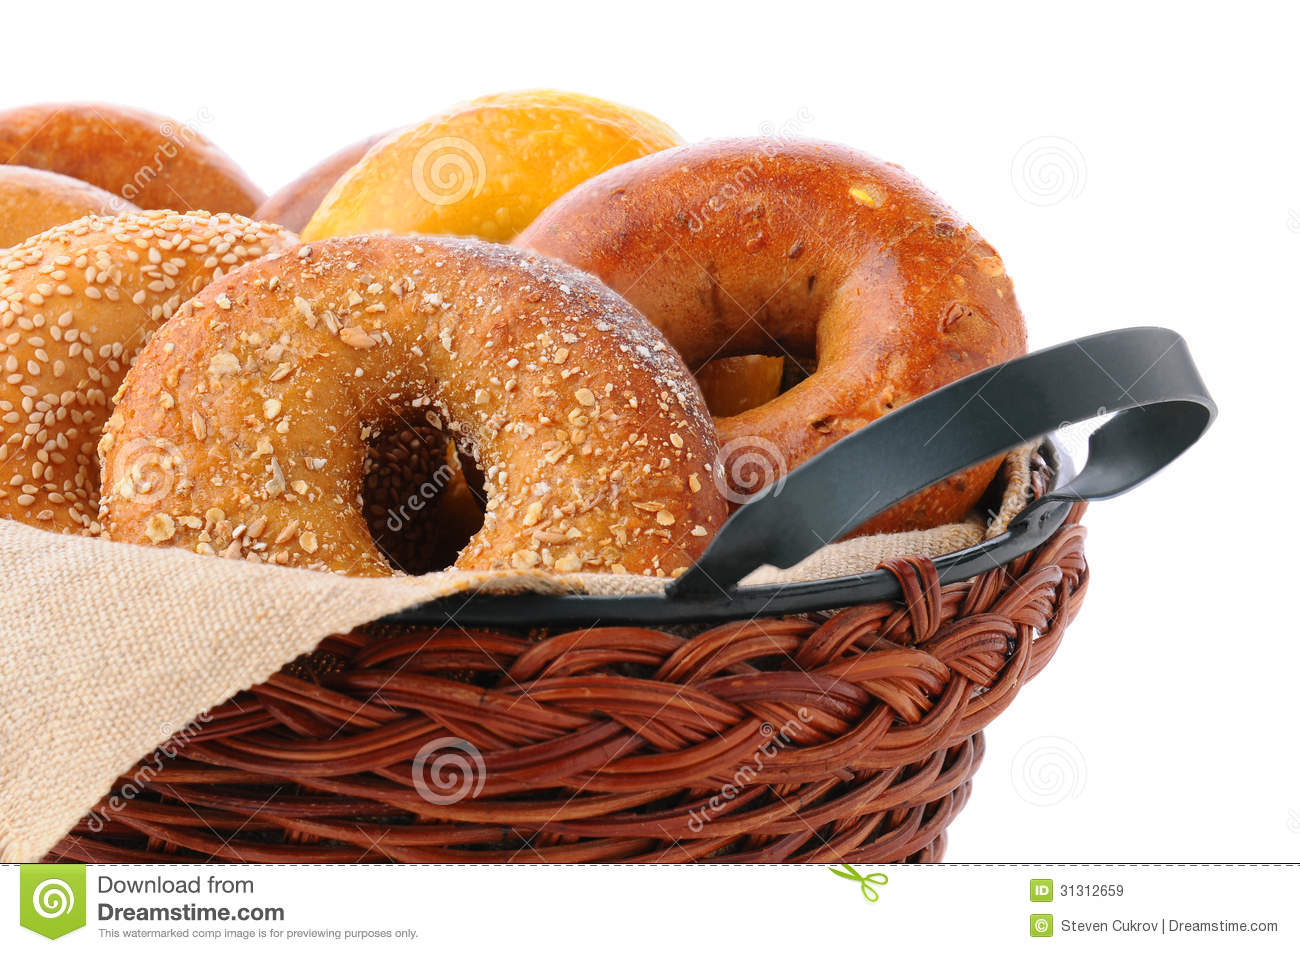 plain or egg bagel with Royalty Free Stock Images Bagels Basket Closeup Assorted Fresh Including Egg Sesame Seed Multi Grain Plain Cinnamon Raisin Image31312659 on Vegan Coconut Kabocha Squash Soup With Corn Salsa 4 Points together with 25692 also 1200 Calorie Diabetic Diet Plan Friday also Royalty Free Stock Images Bagels Basket Closeup Assorted Fresh Including Egg Sesame Seed Multi Grain Plain Cinnamon Raisin Image31312659 as well Tyler Shed 32 Placed Top 5.